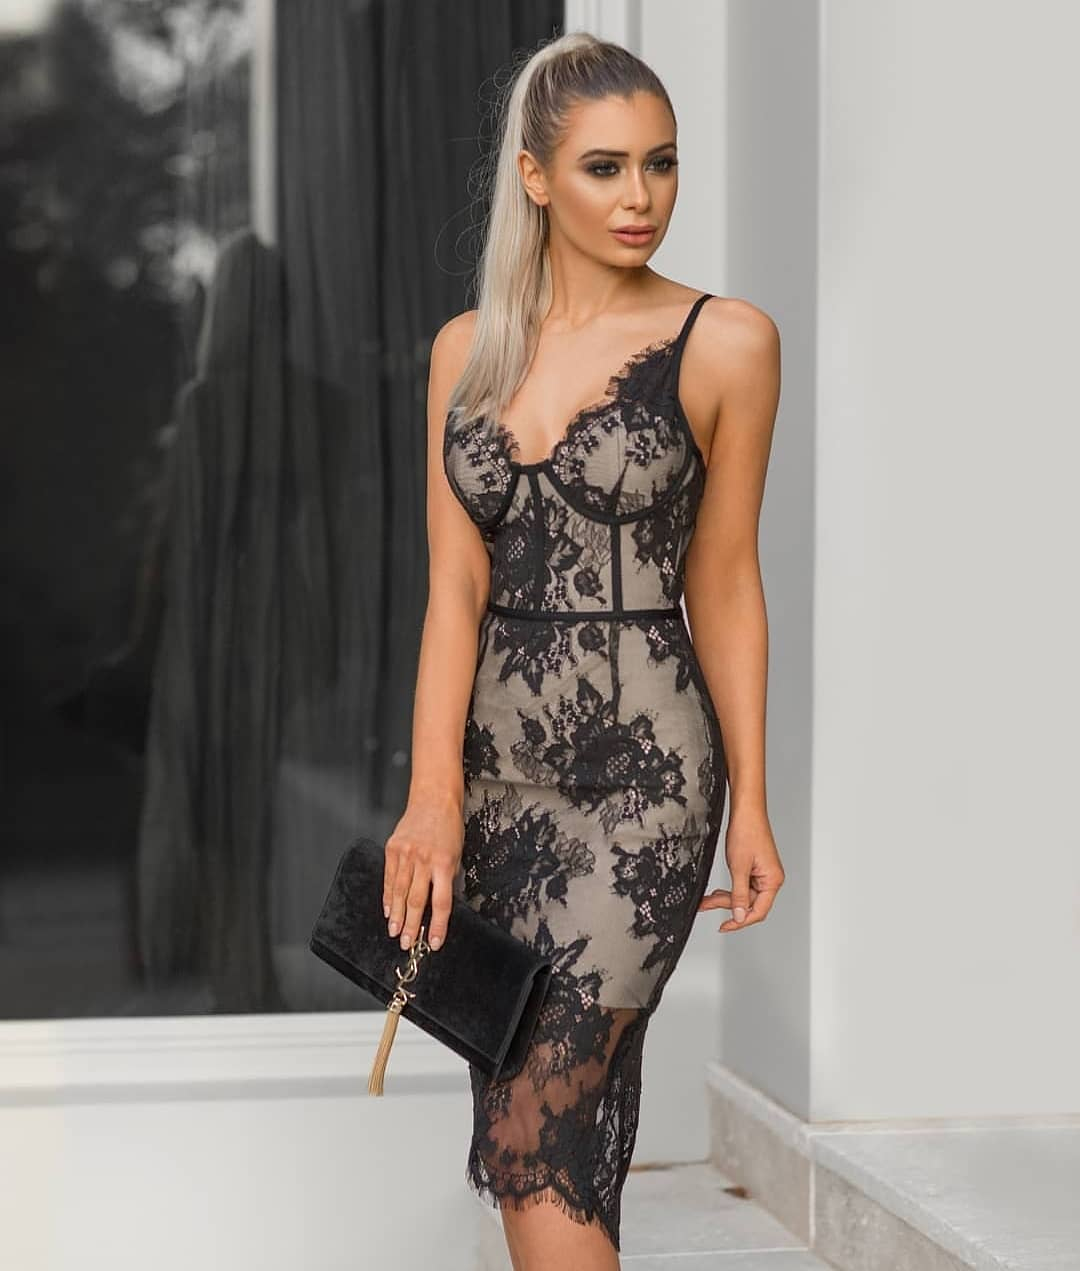 Slim Sheer Black Lace Dress With Spaghetti Straps For Summer 2020